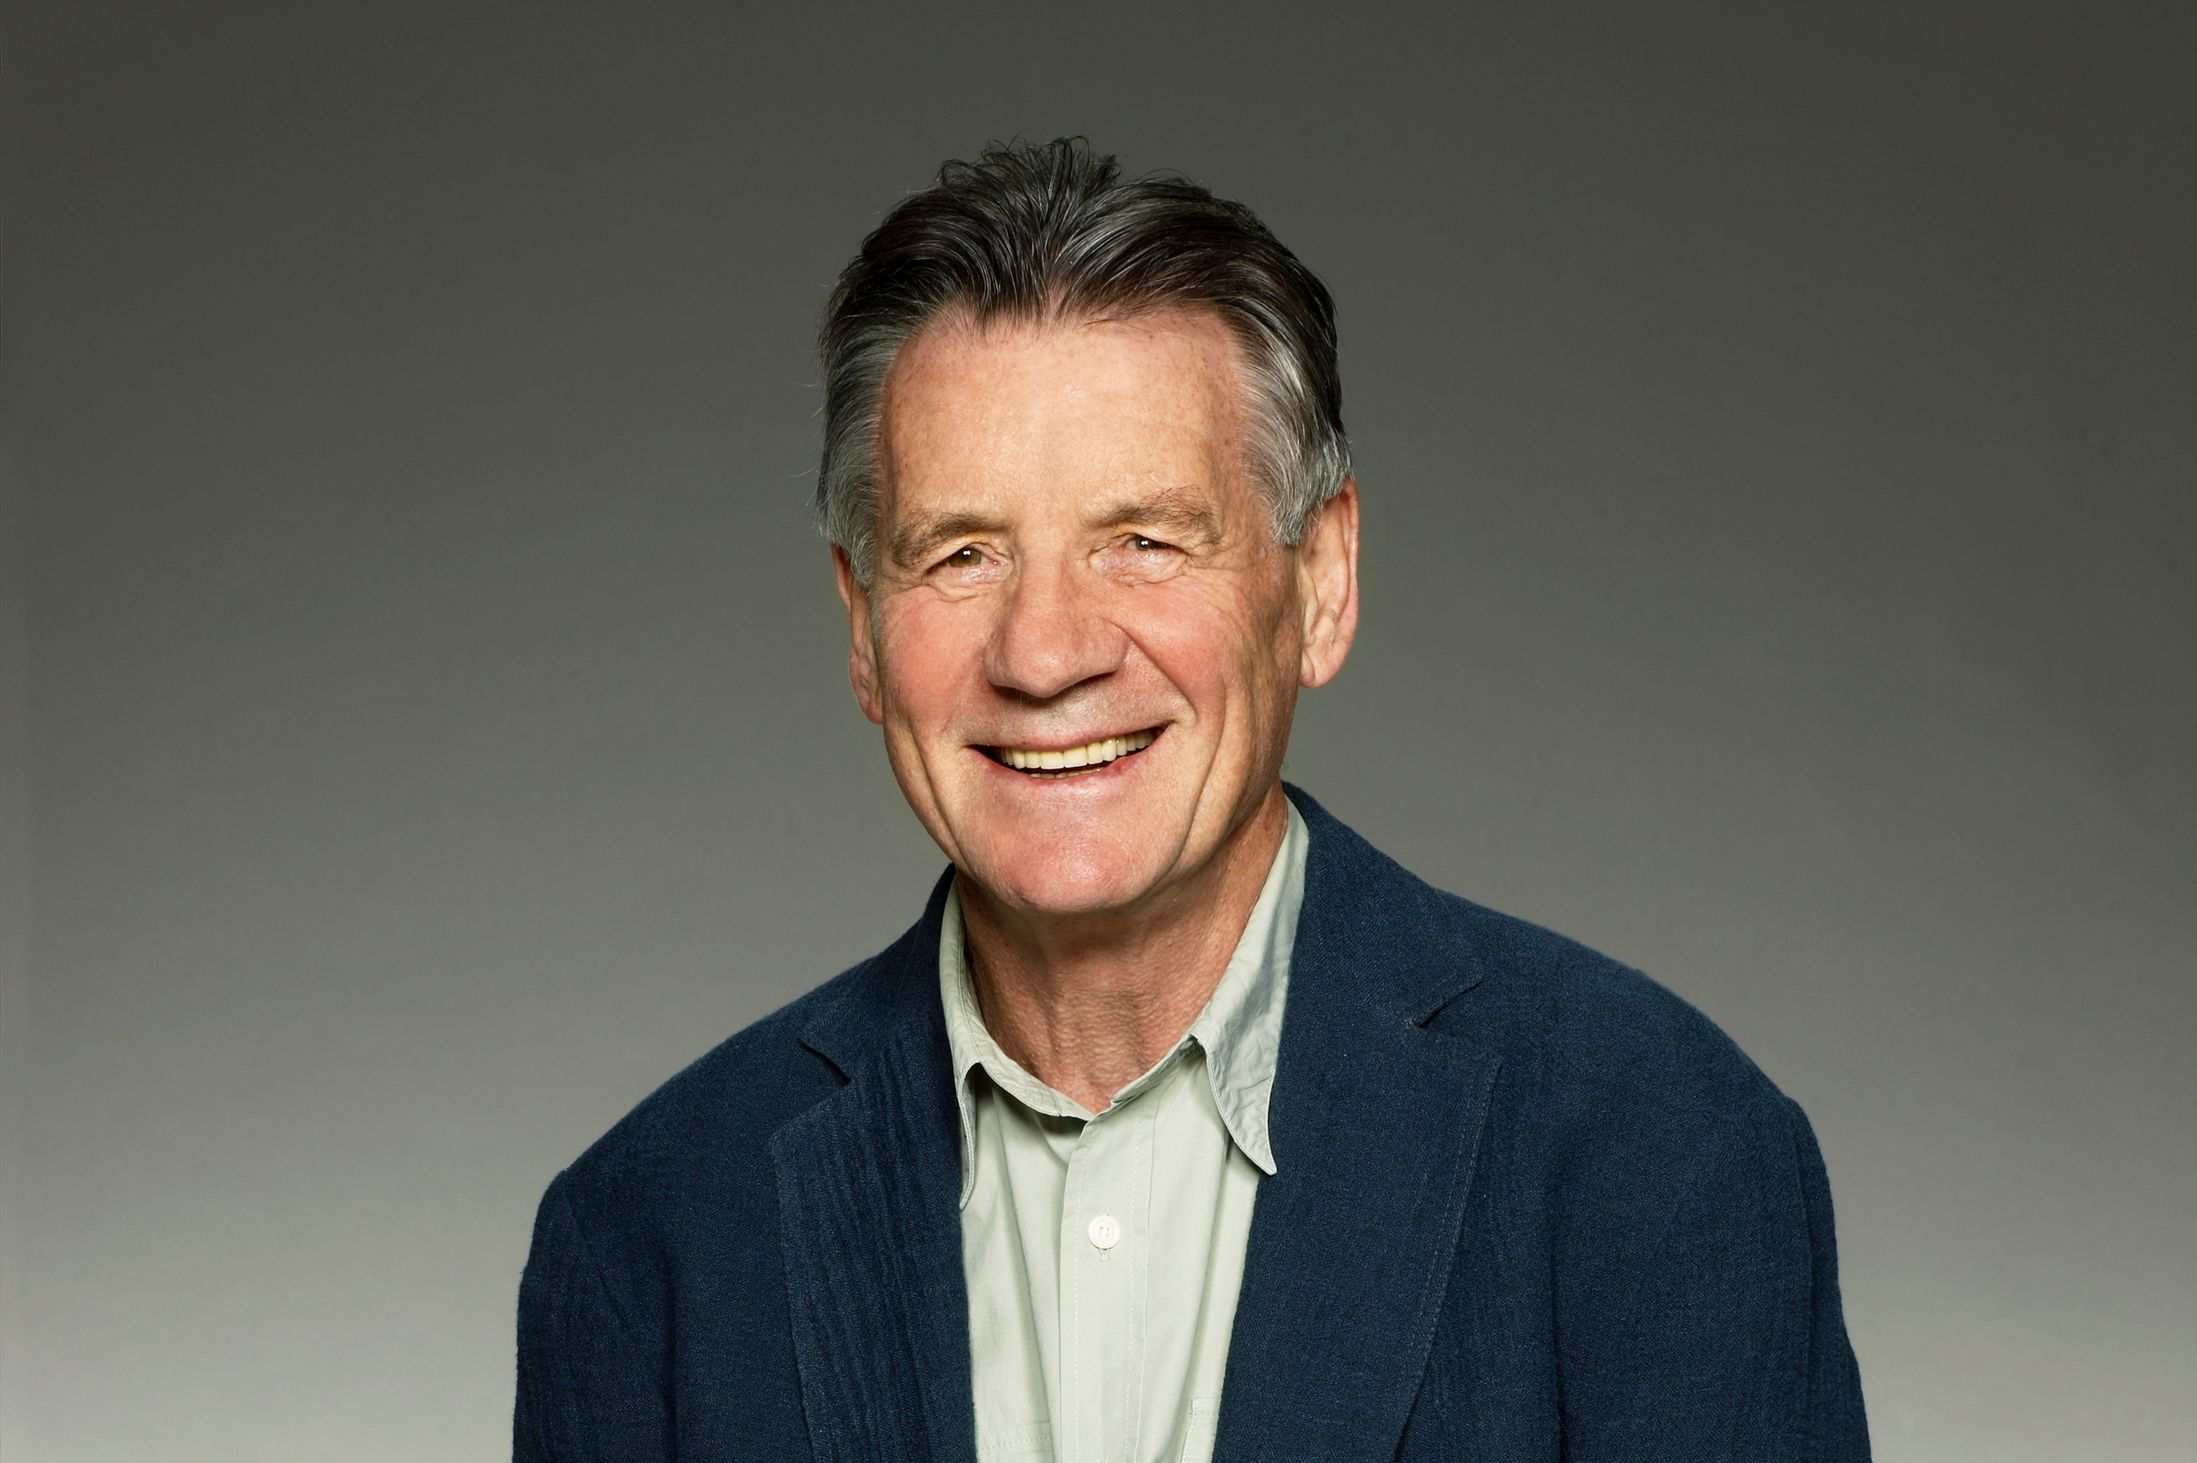 michael palin - photo #22